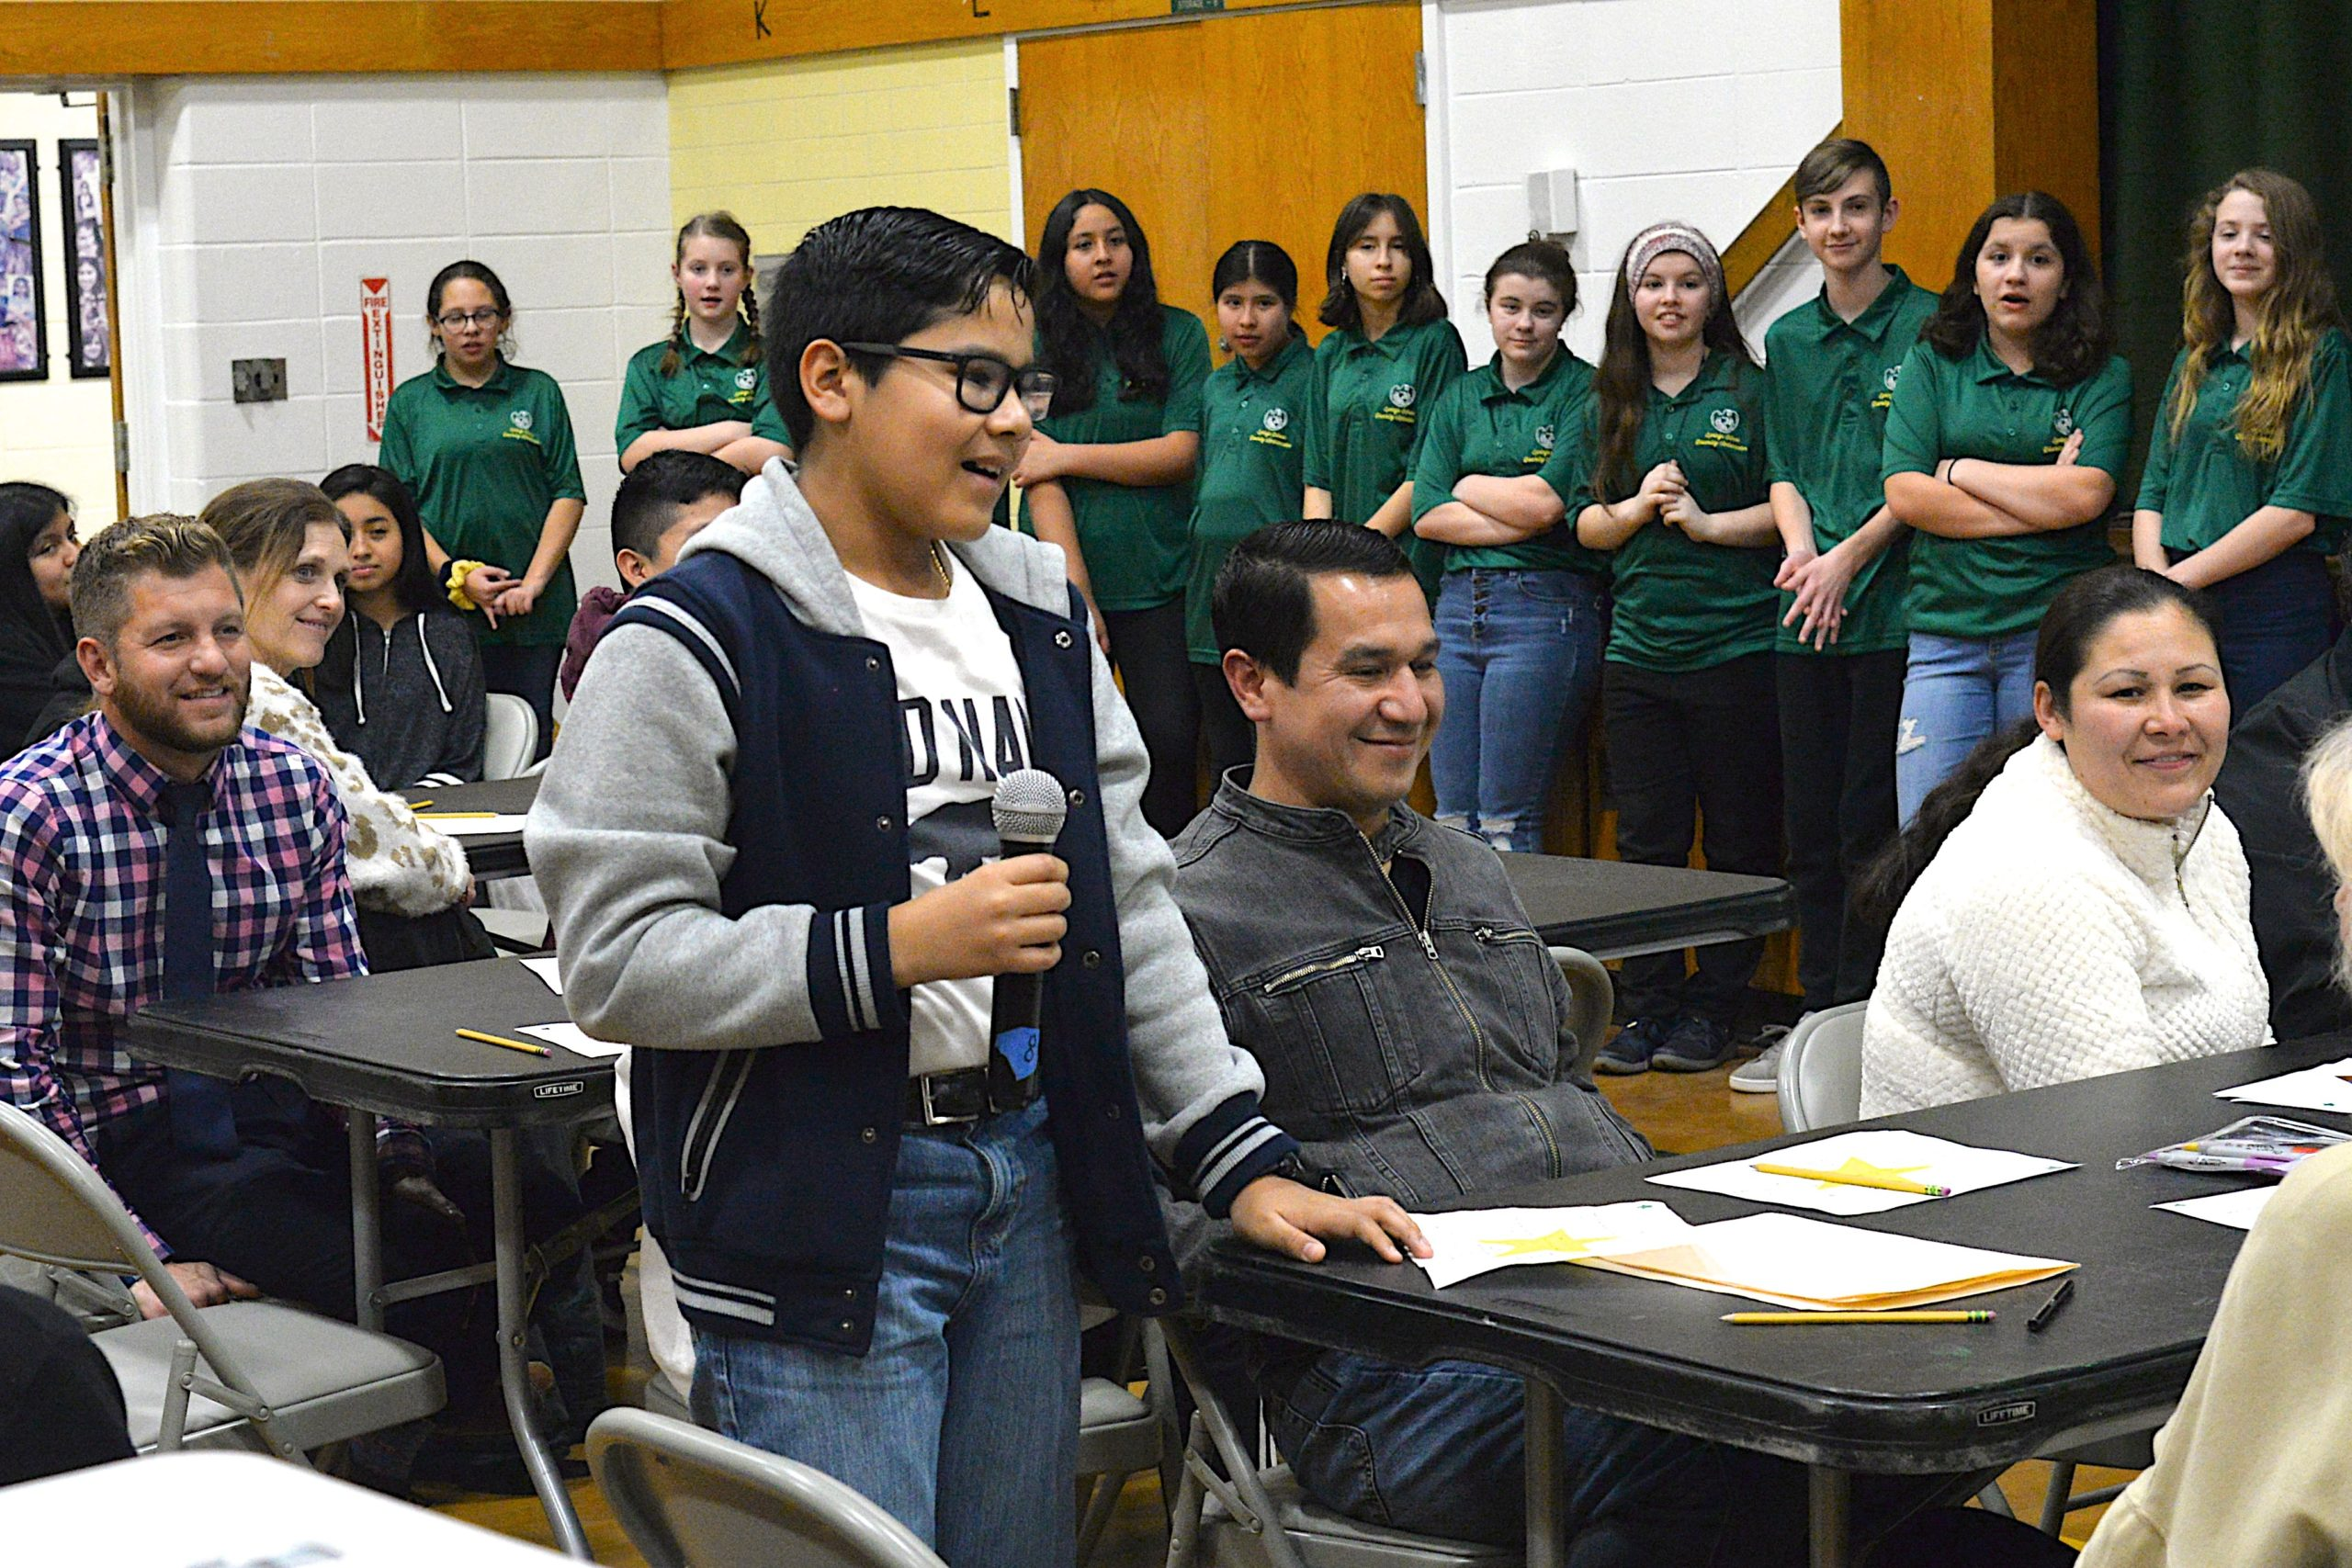 Springs School sixth grader Marcos Munoz takes part in an exercise at the Springs School's Diversity institute on Friday. KYRIL BROMLEY